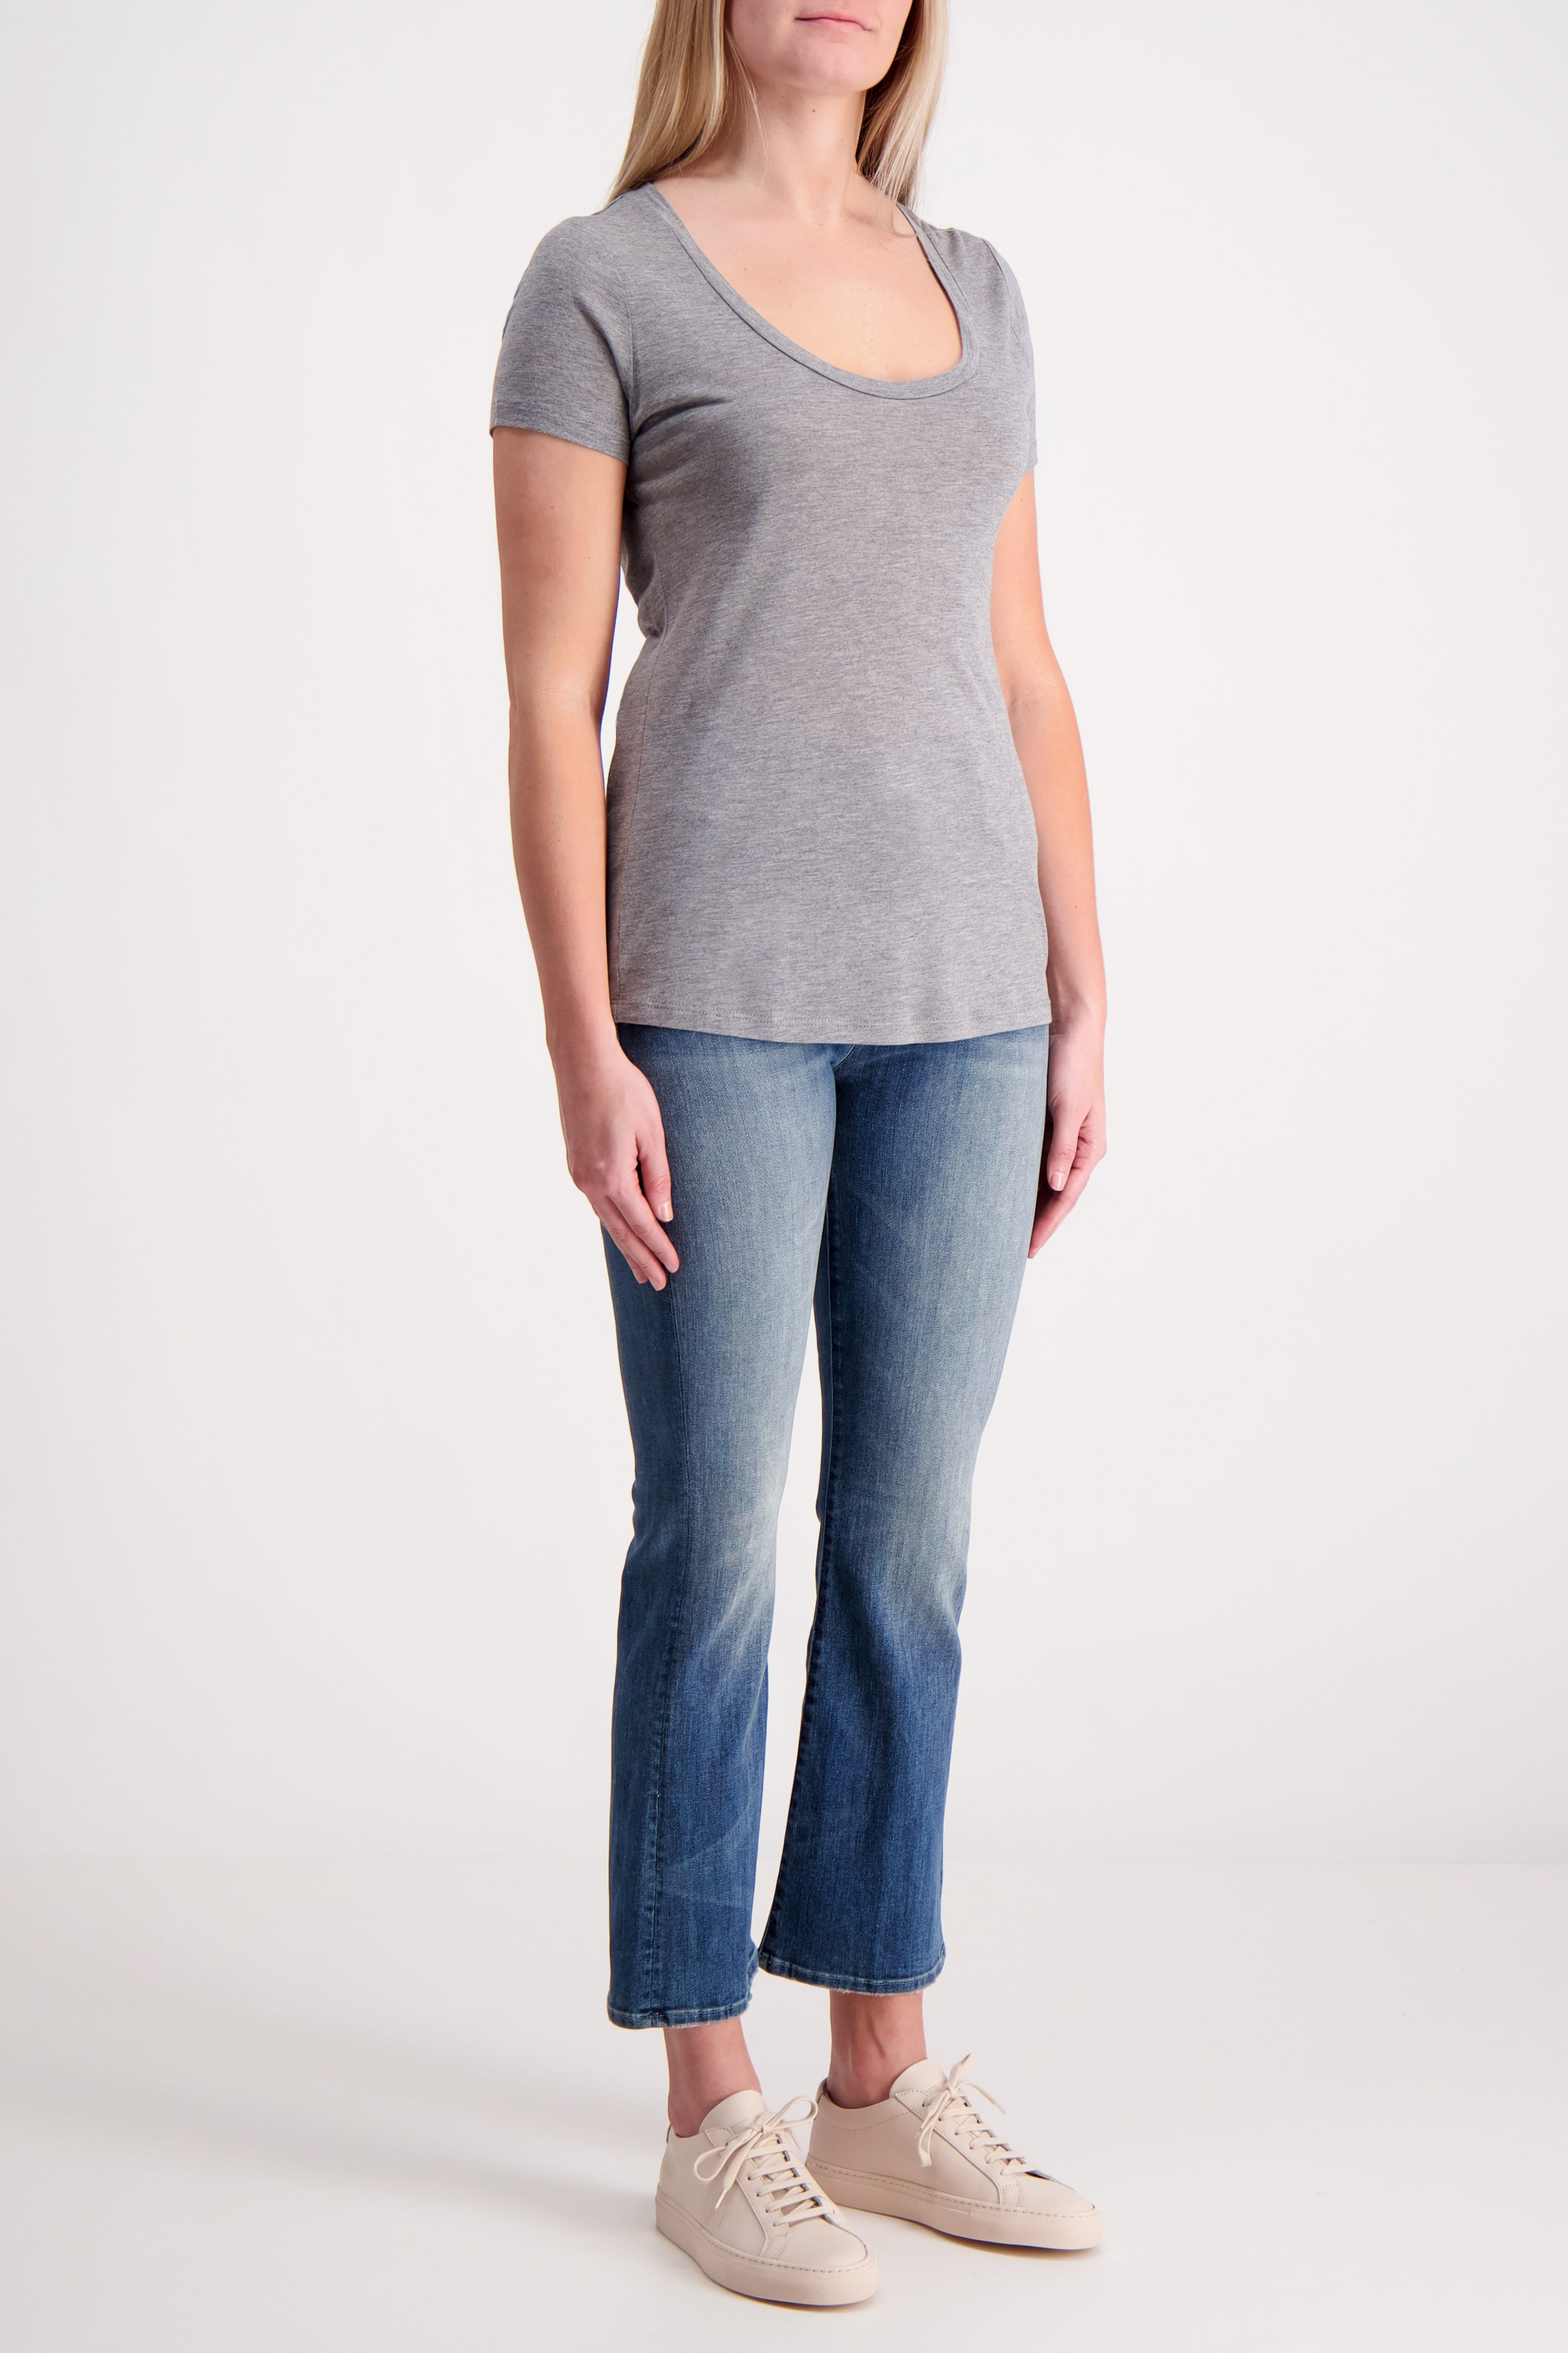 SHORT SLEEVE PERFECT T GREY